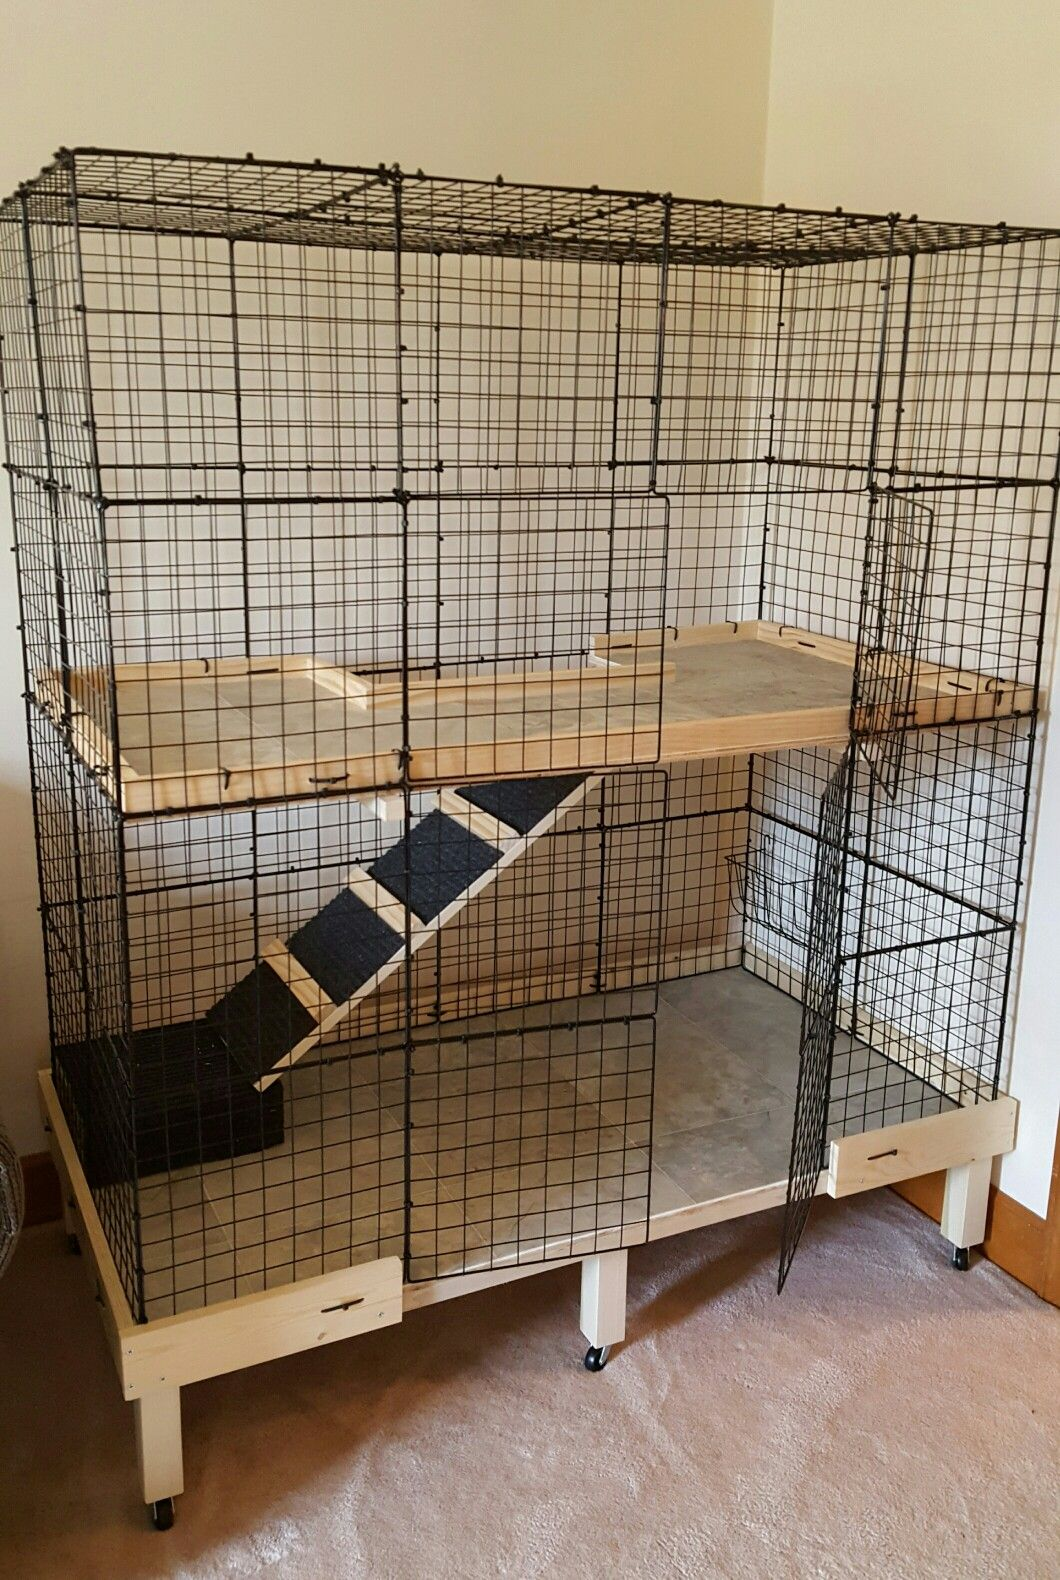 Homemade Flemish Giant Rabbit Cage Pet Bunny Rabbit Cage Diy Bunny Cage